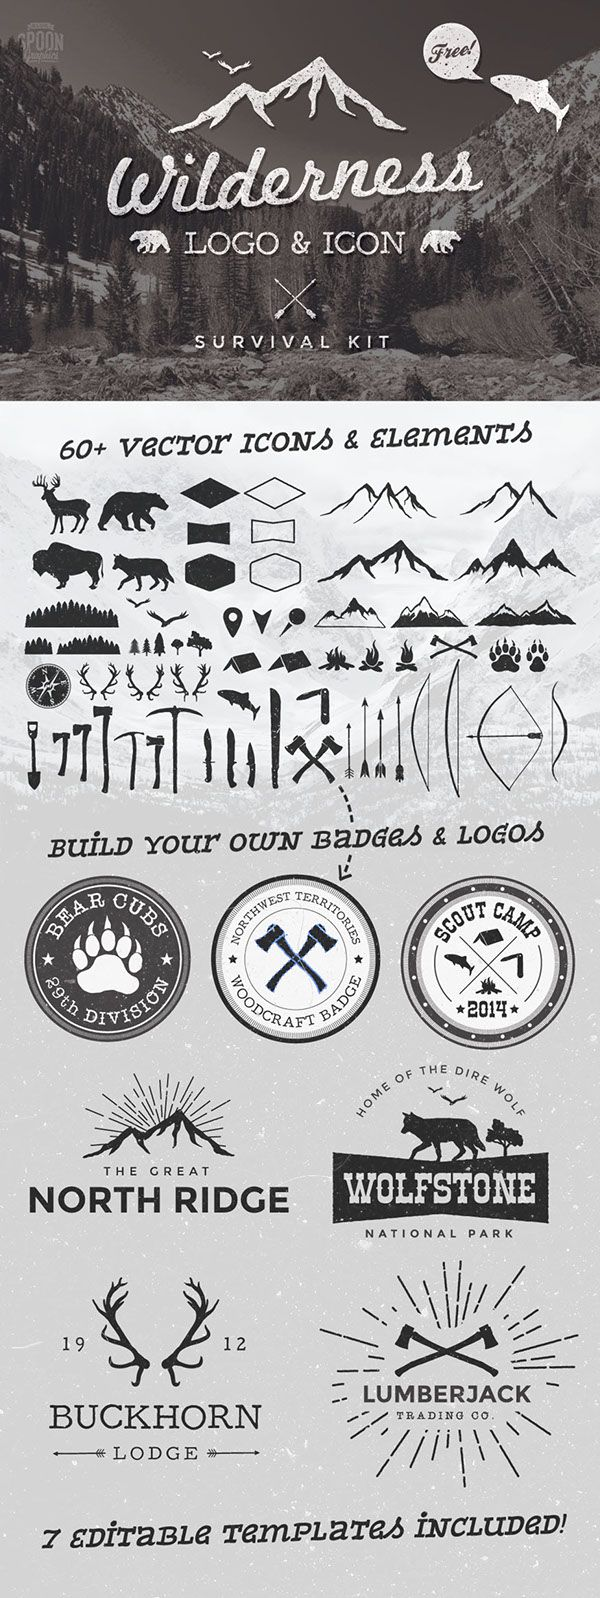 50+ Free Vintage Logo Badge & Insignia Templates on Behance